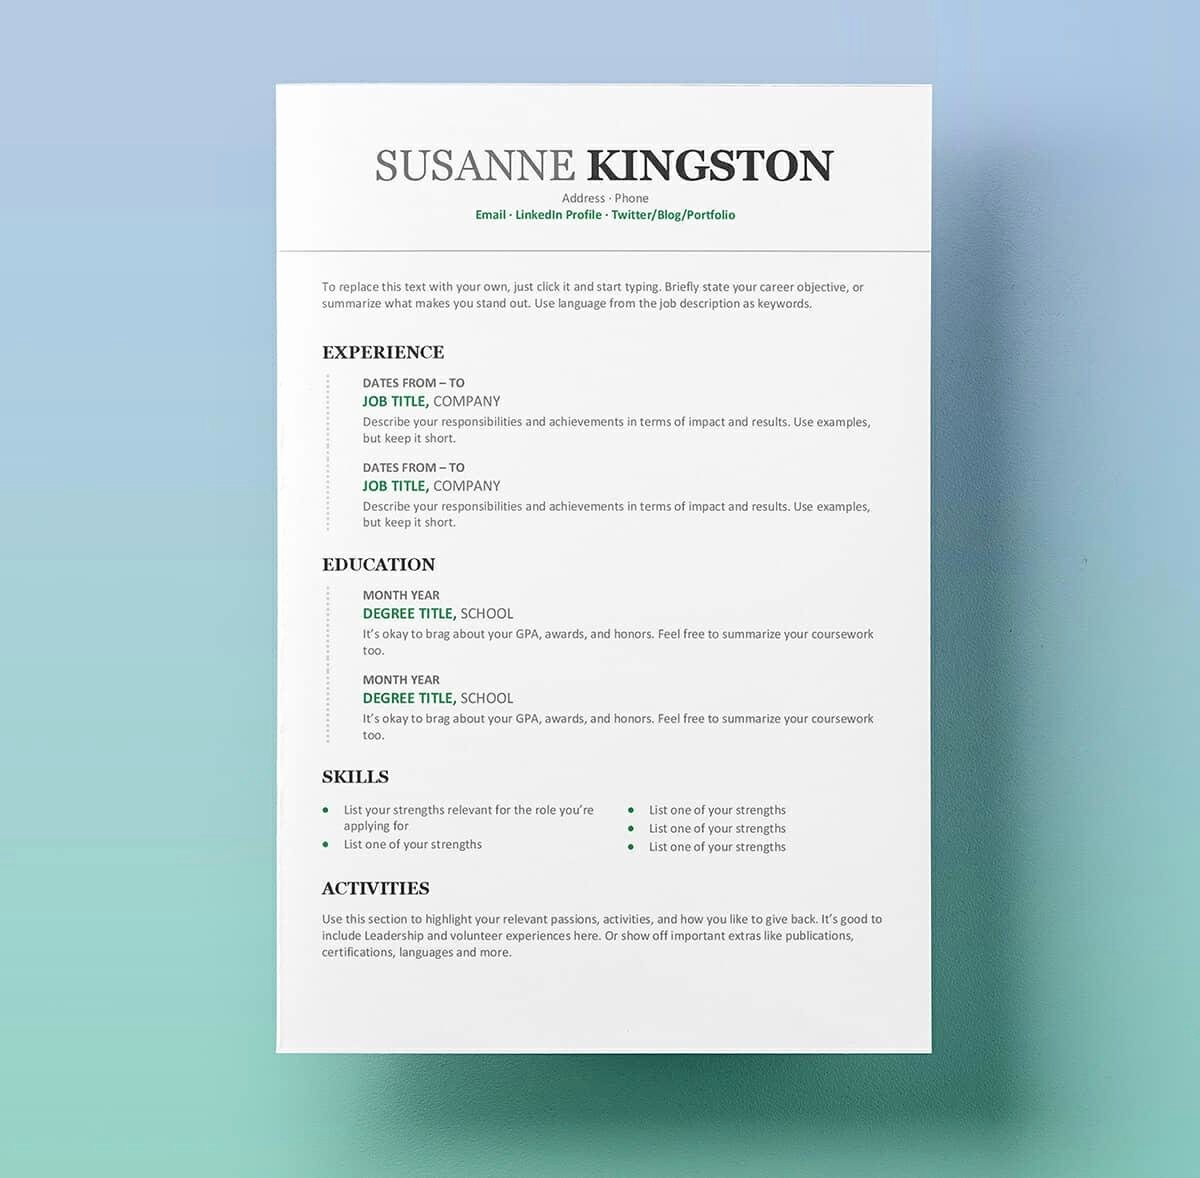 Sample Resume In Word format Fresh Resume Templates for Word Free 15 Examples for Download